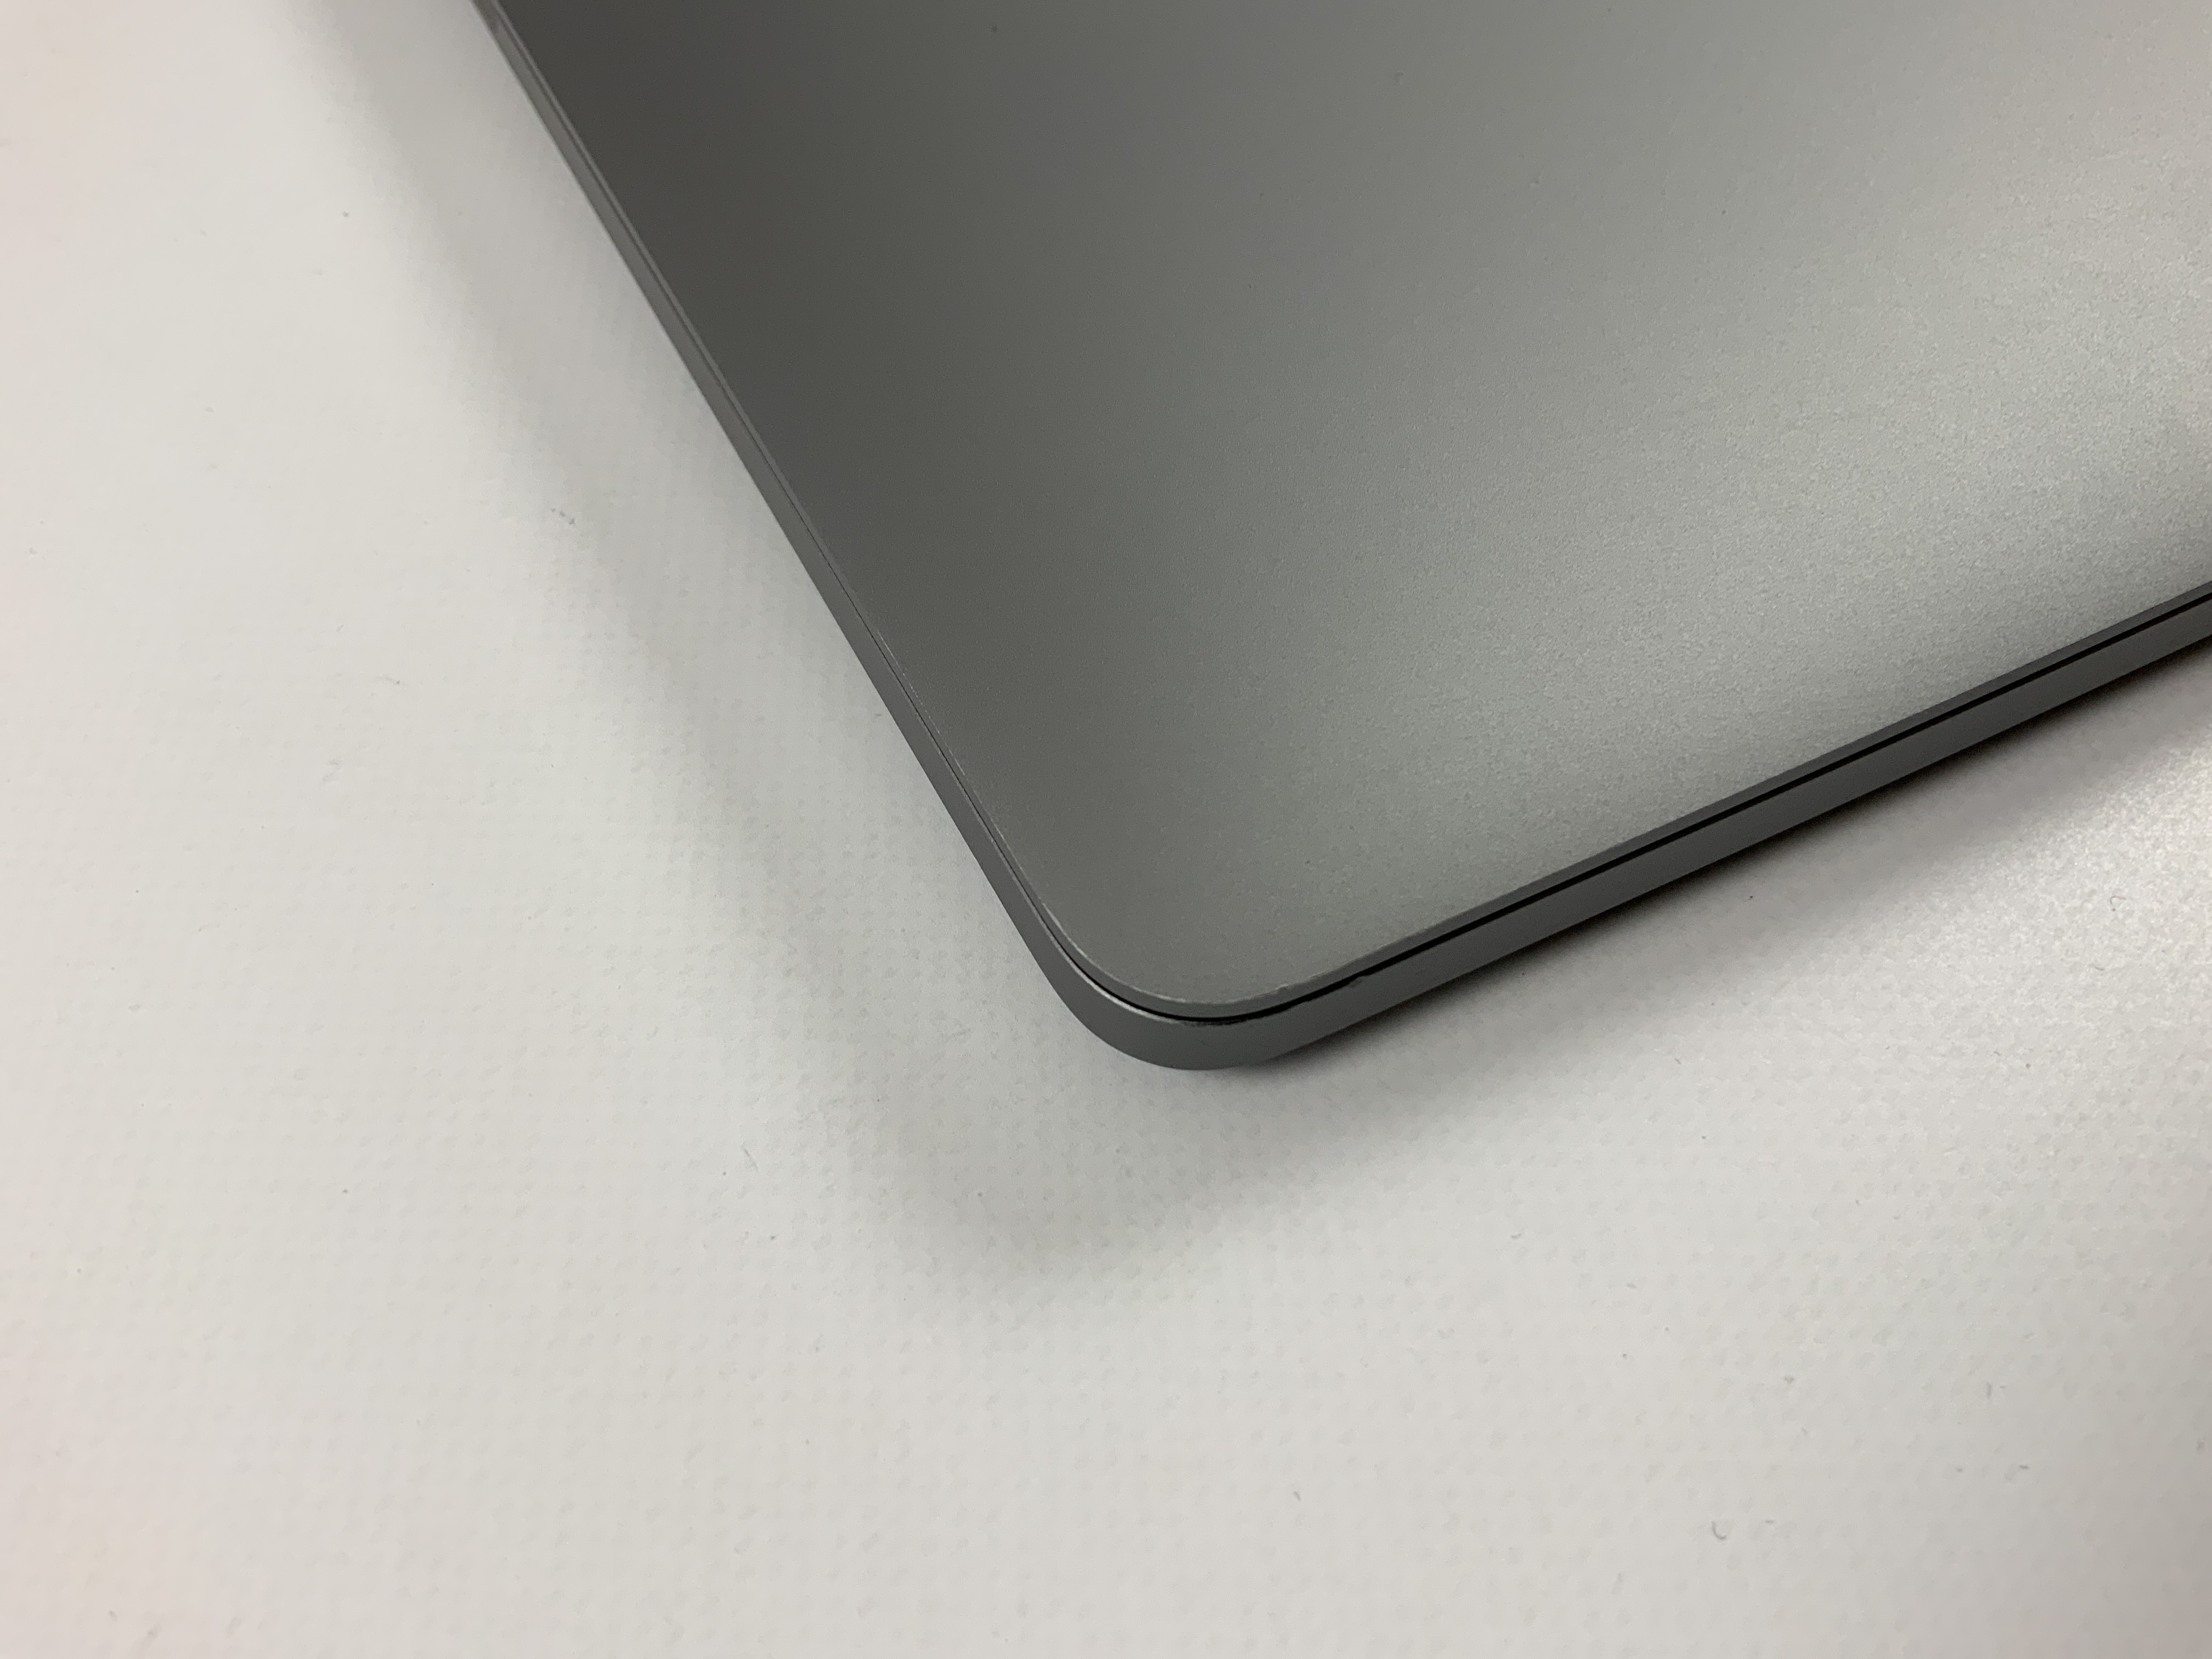 "MacBook Pro 13"" 4TBT Late 2016 (Intel Core i5 2.9 GHz 16 GB RAM 512 GB SSD), Space Gray, Intel Core i5 2.9 GHz, 16 GB RAM, 512 GB SSD, imagen 4"